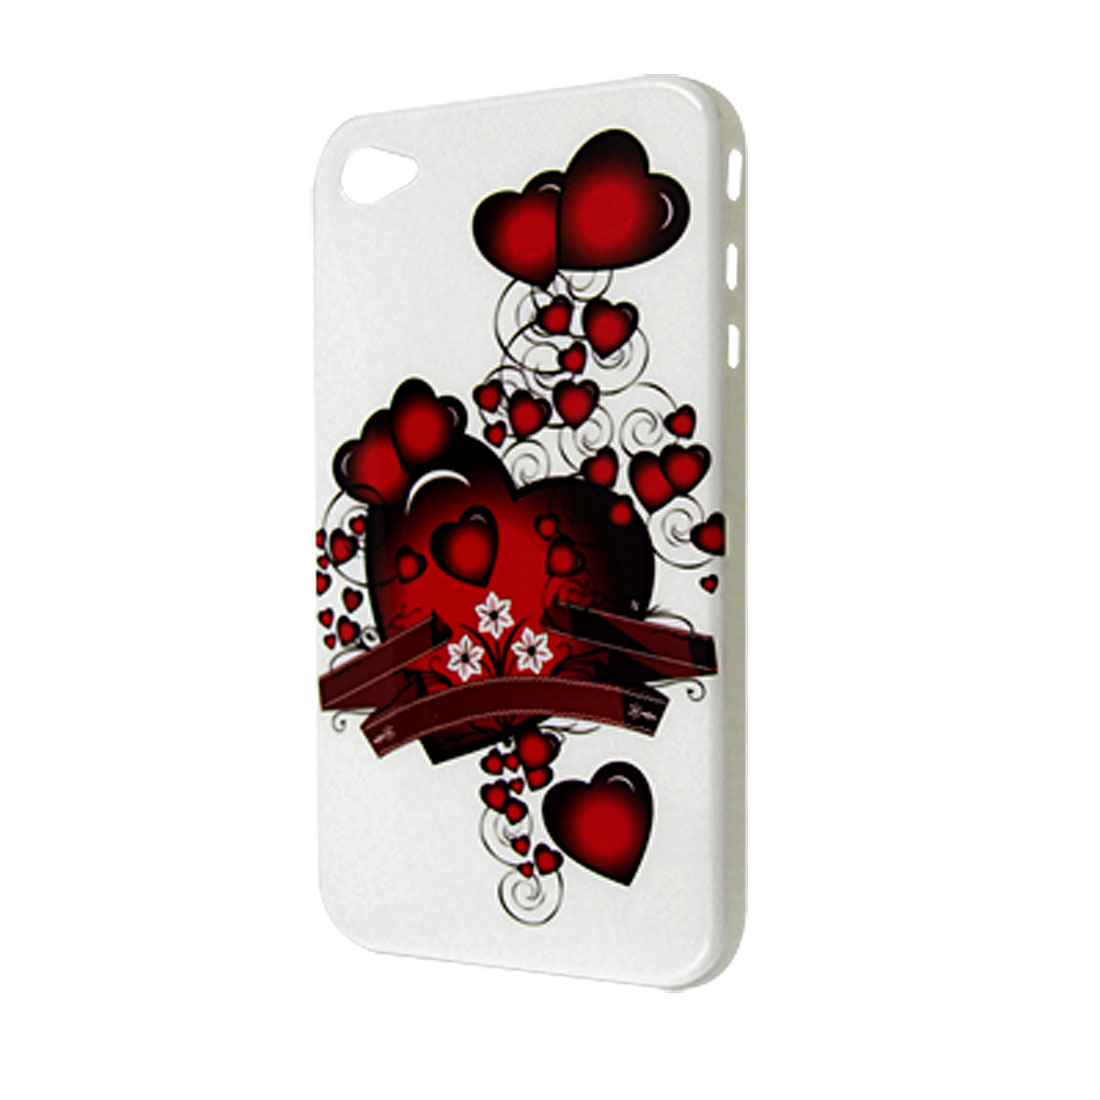 Hearts Printed IMD Hard Plastic Back Case for iPhone 4 4G